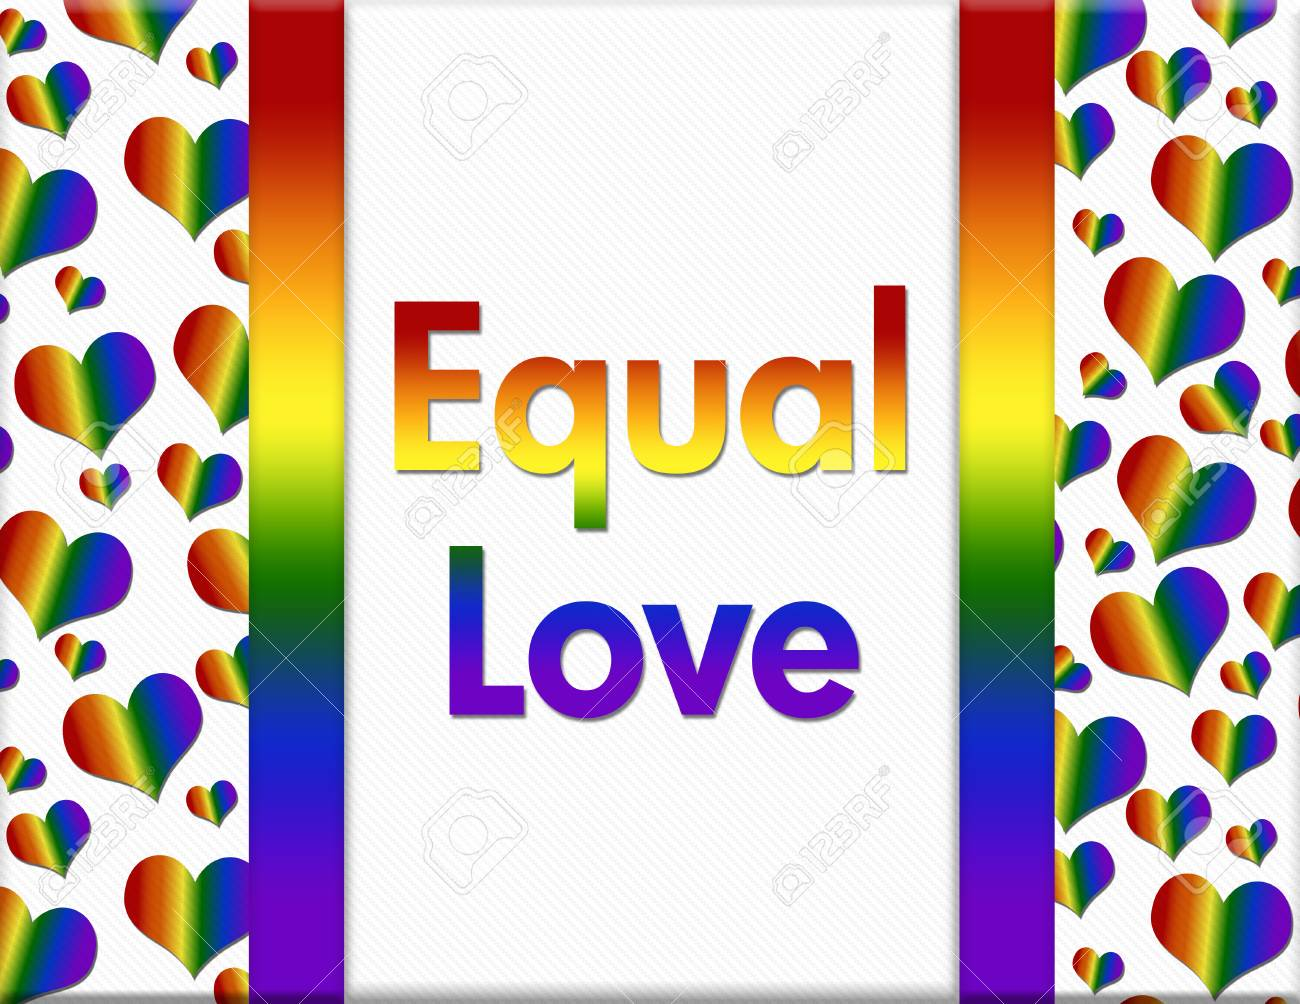 Lgbt Equal Love Message A Multicolored Frame With Words Equal Love And Lgbt Pride Colored